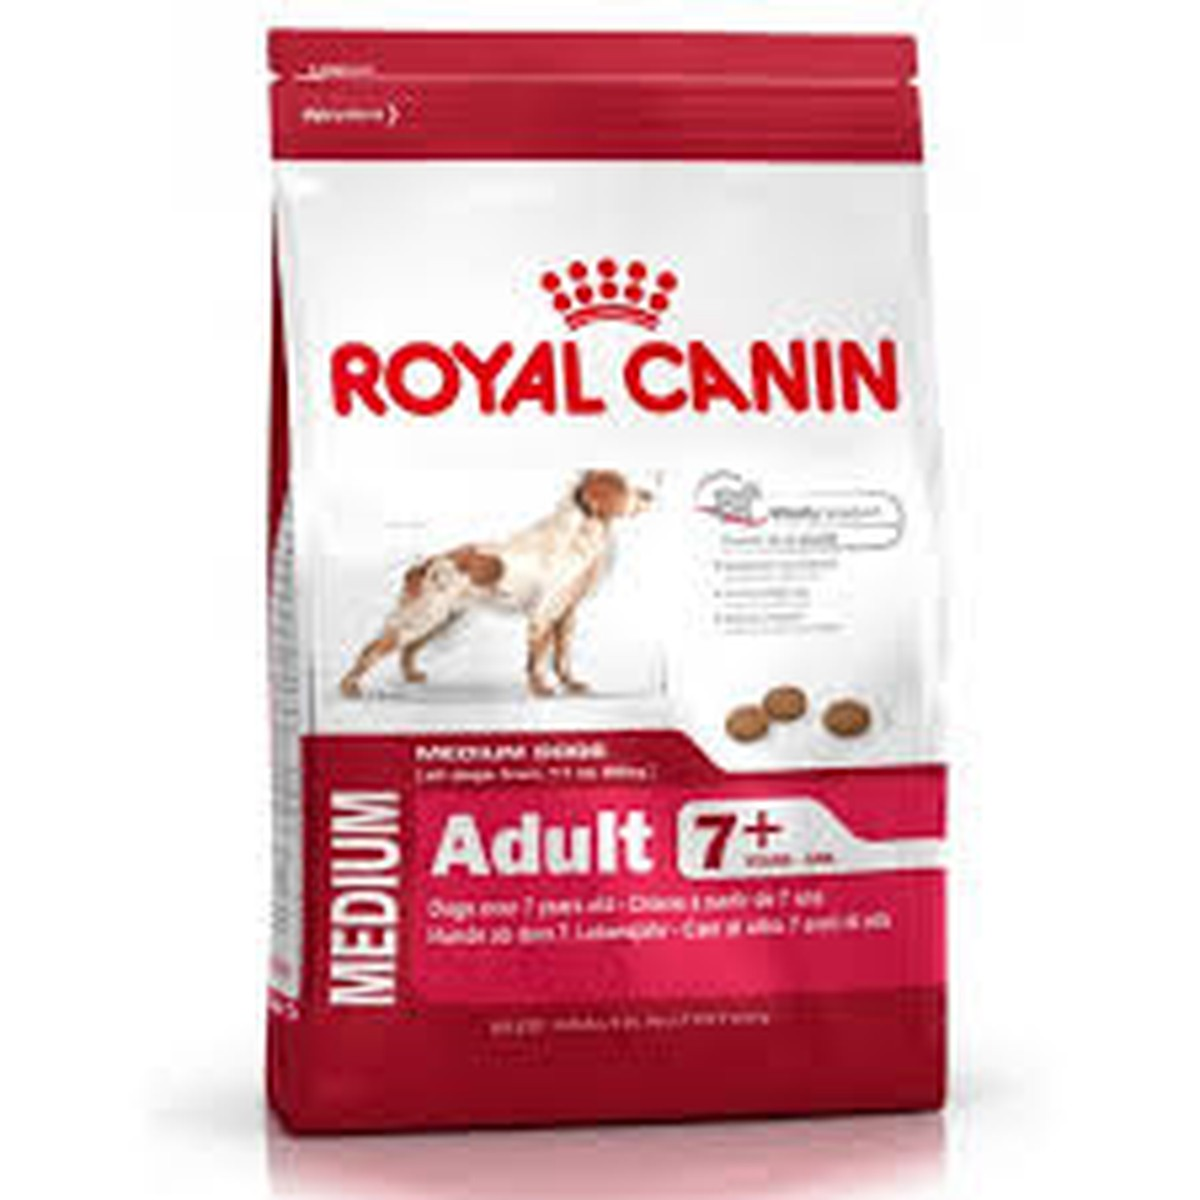 Royal Canin  Medium Adult 7+ 15 kg  15 kg